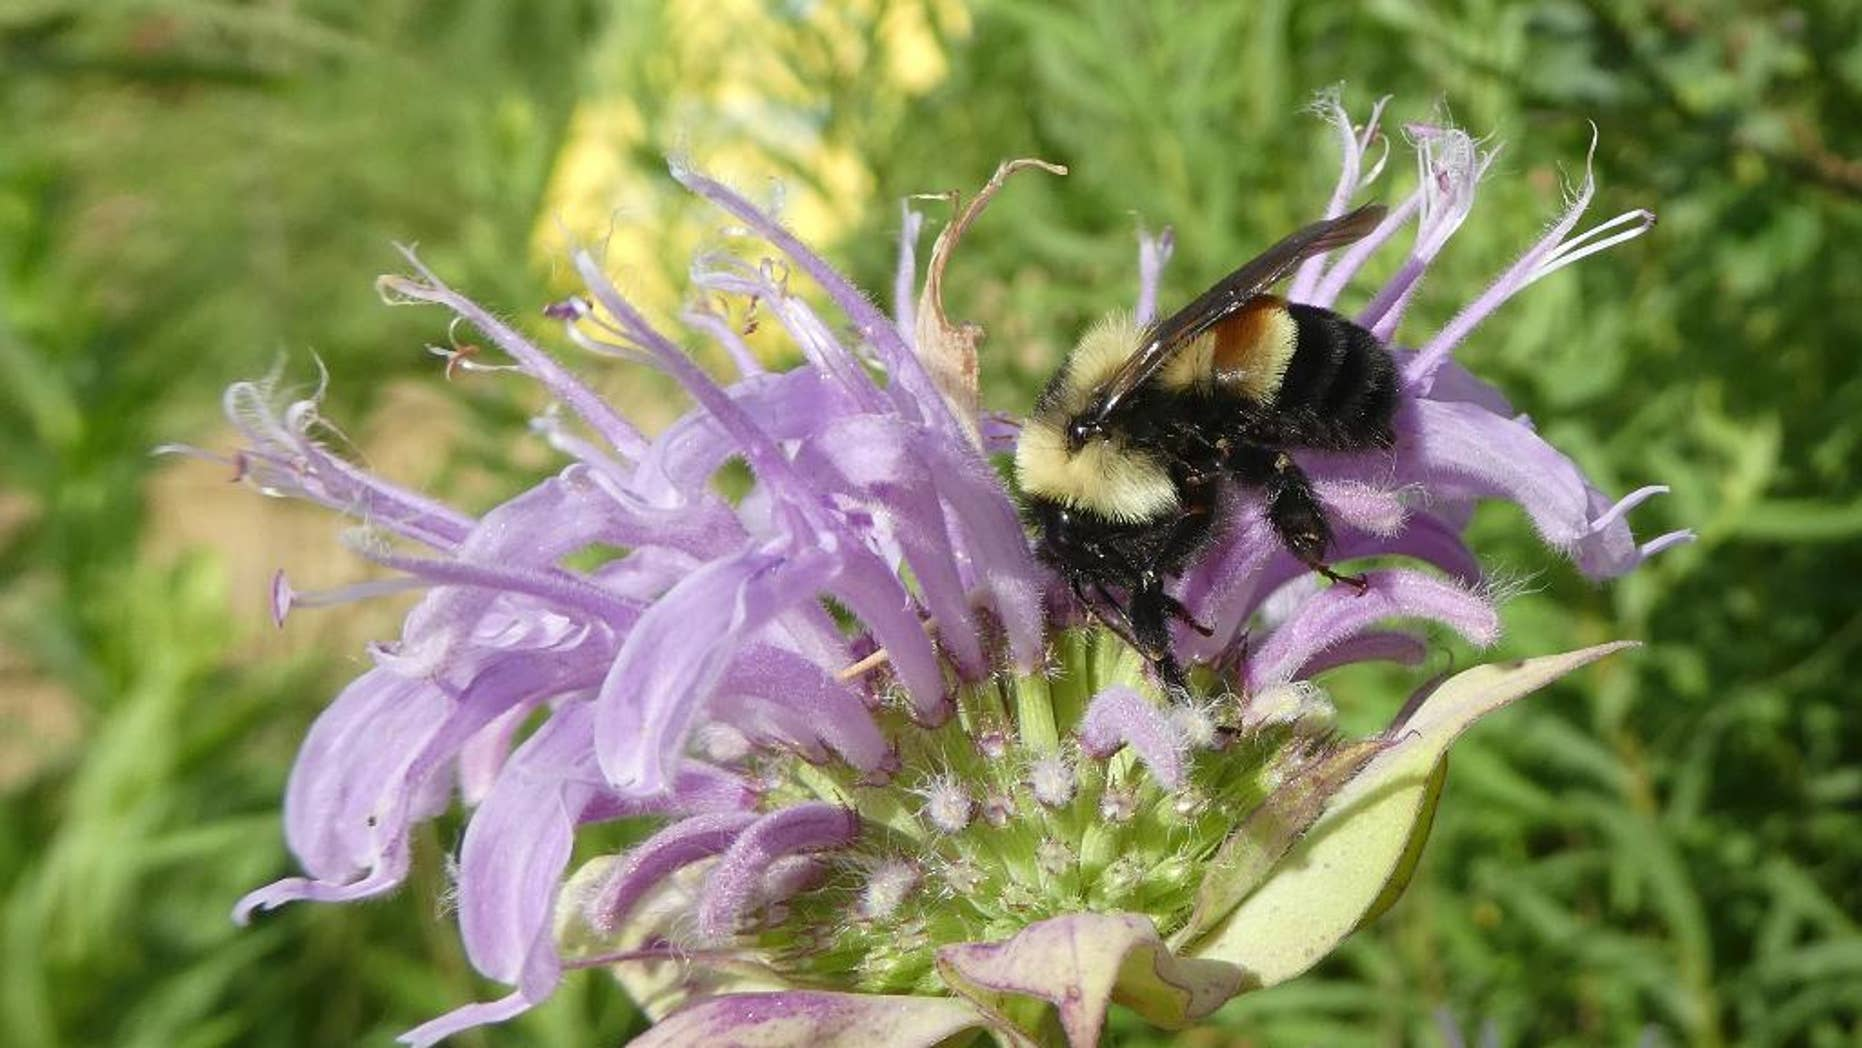 FILE - This 2016 file photo provided by The Xerces Society shows a rusty patched bumblebee in Minnesota. The Fish and Wildlife Service said that it was delaying listing the bee species as endangered, one day before it was to take effect. The listing was to take effect Friday, Feb. 10, 2017. (Sarah Foltz Jordan/The Xerces Society via AP, File)